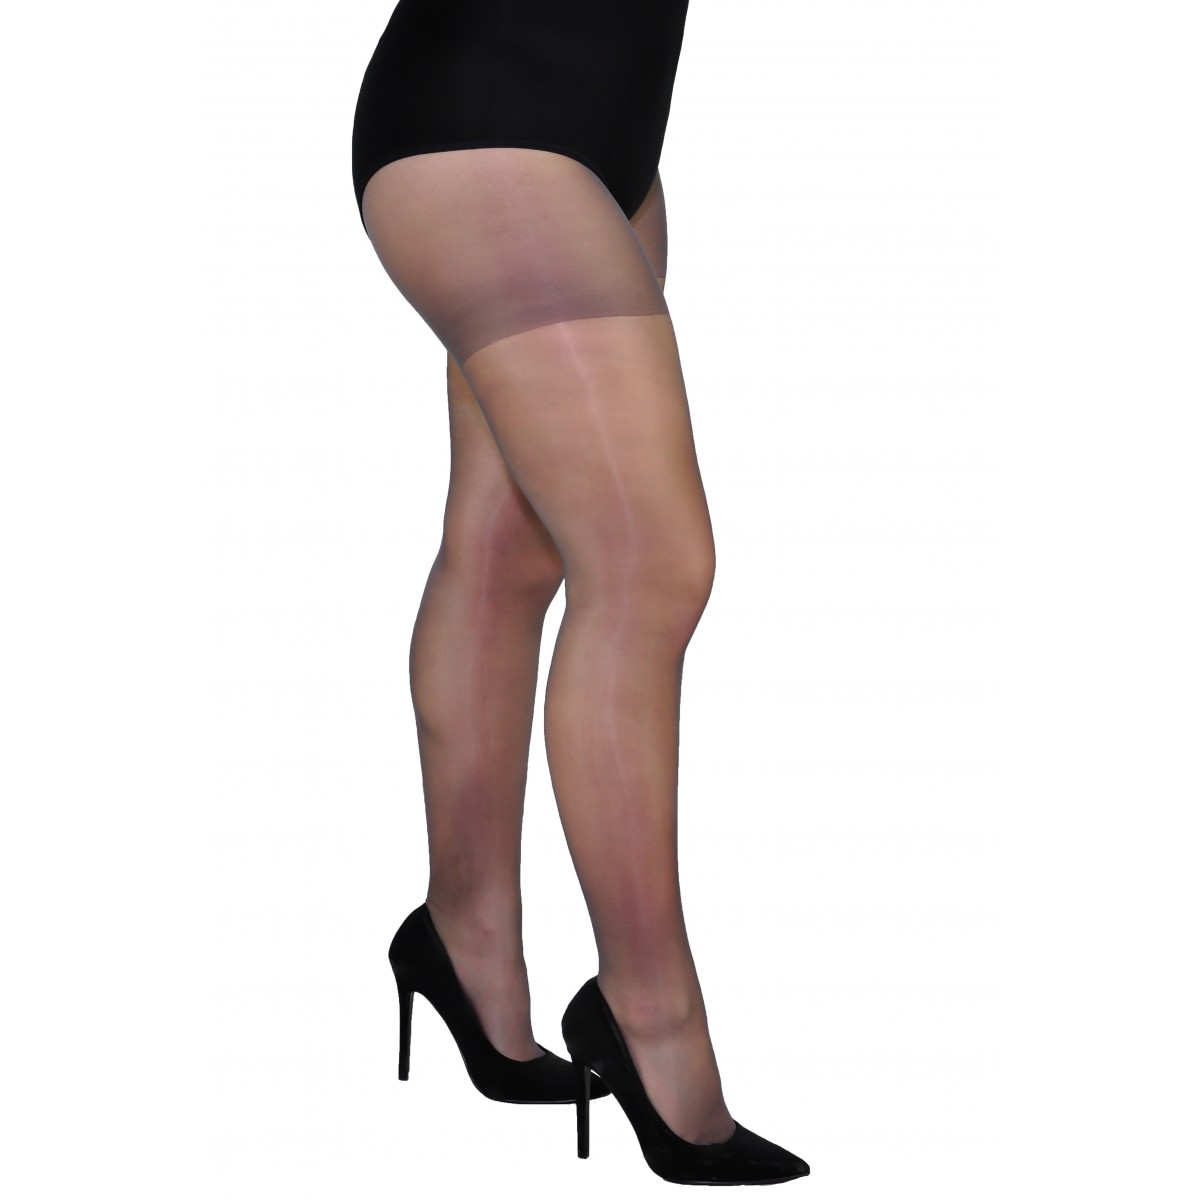 feb3822e4 Plus size sheer delicate lycra tights - 8-20 Den - Classic Tights ...